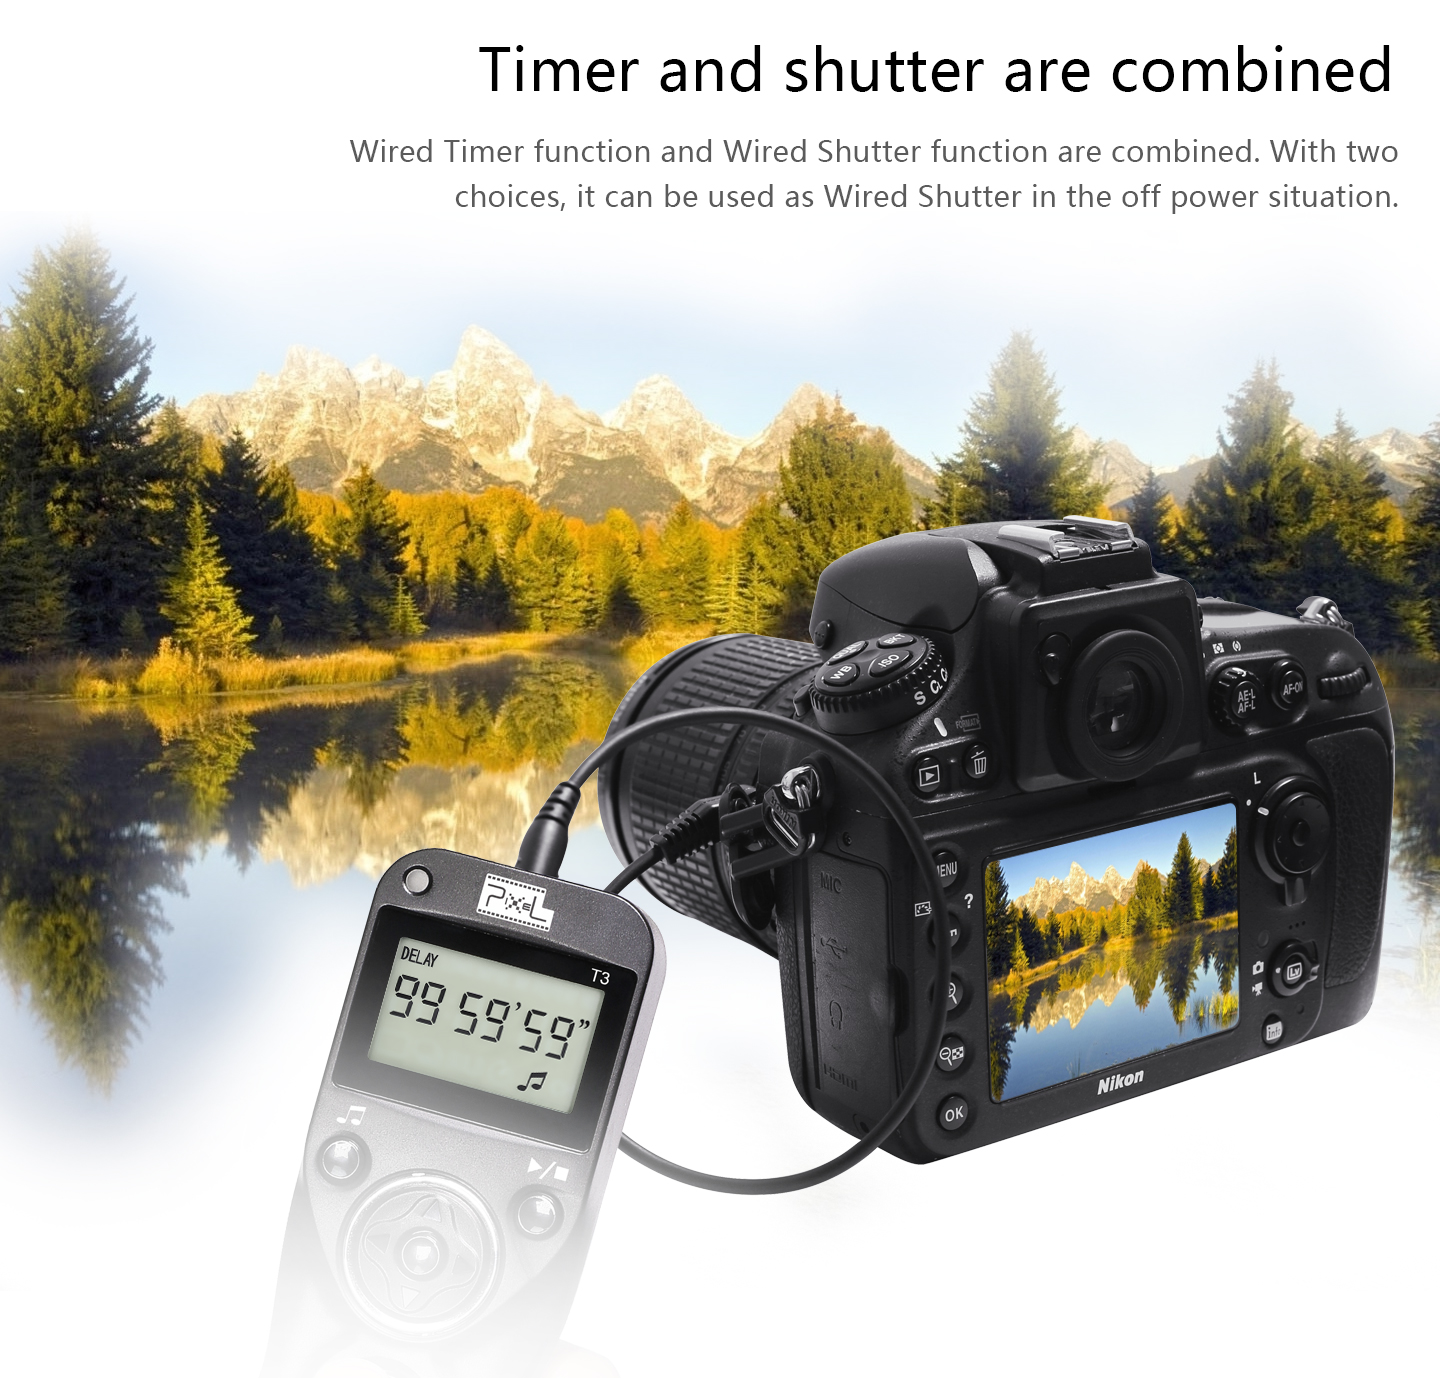 Timer and shutter are combined